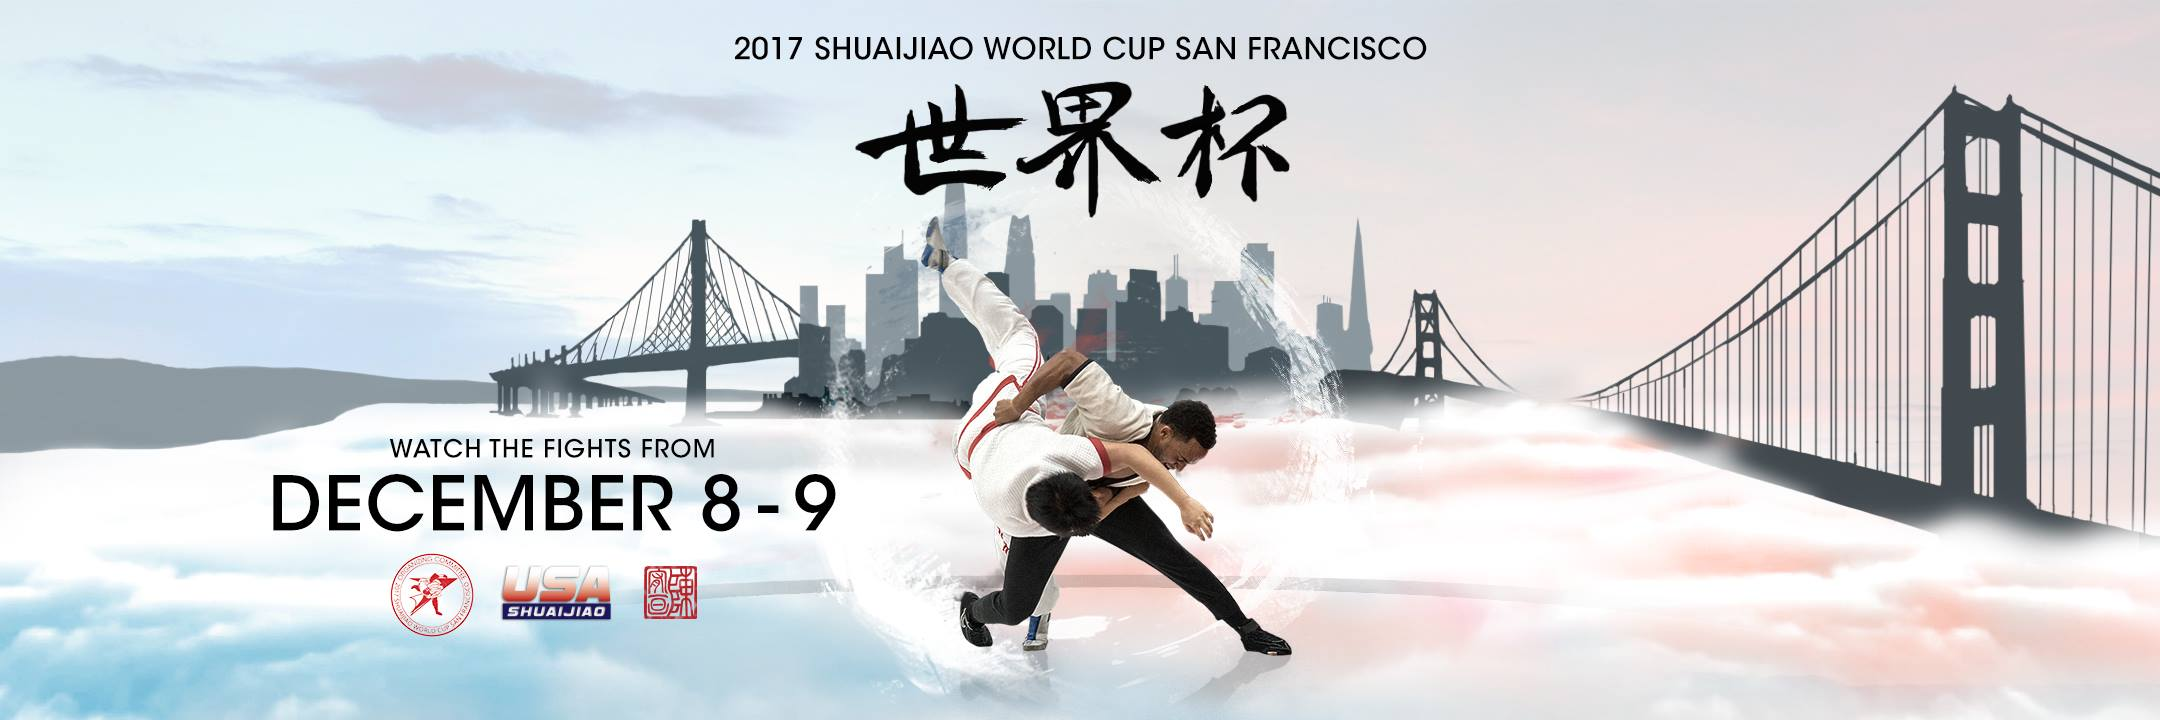 2017_world_cup_header_site